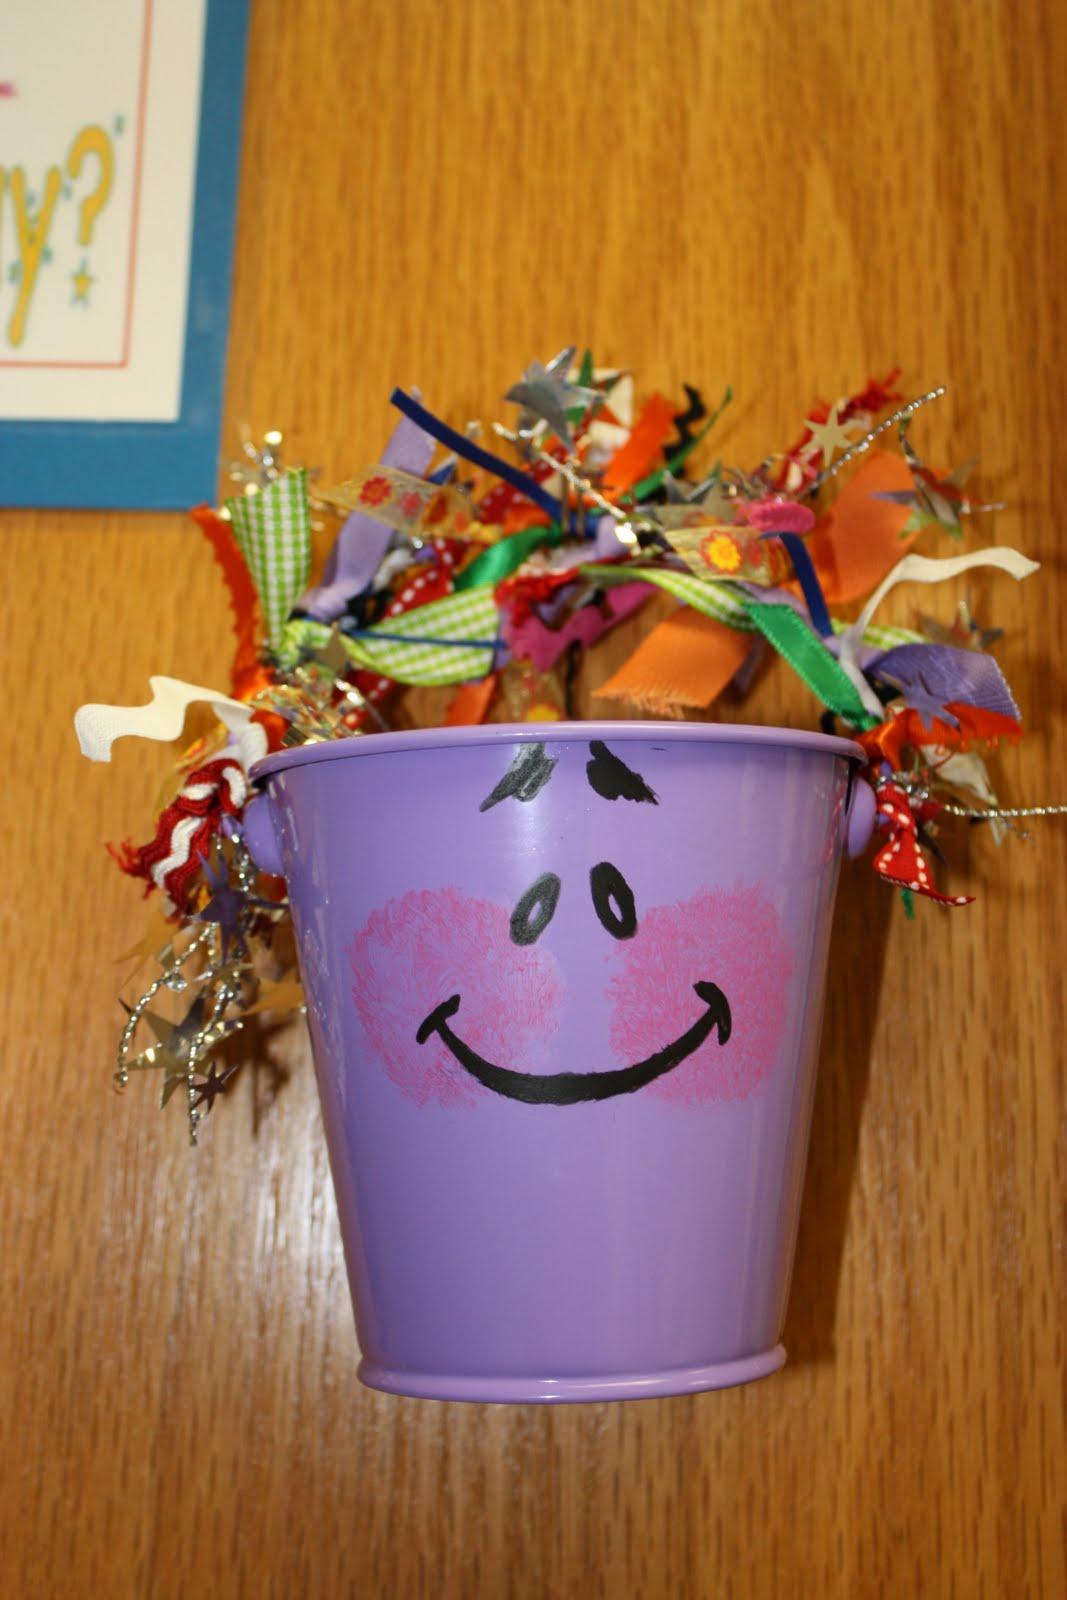 bucket filler Introduced bucket filling & read have you filled a bucket today checked for understanding via discussion and exploration of ways that they can fill buckets ask students about how they.